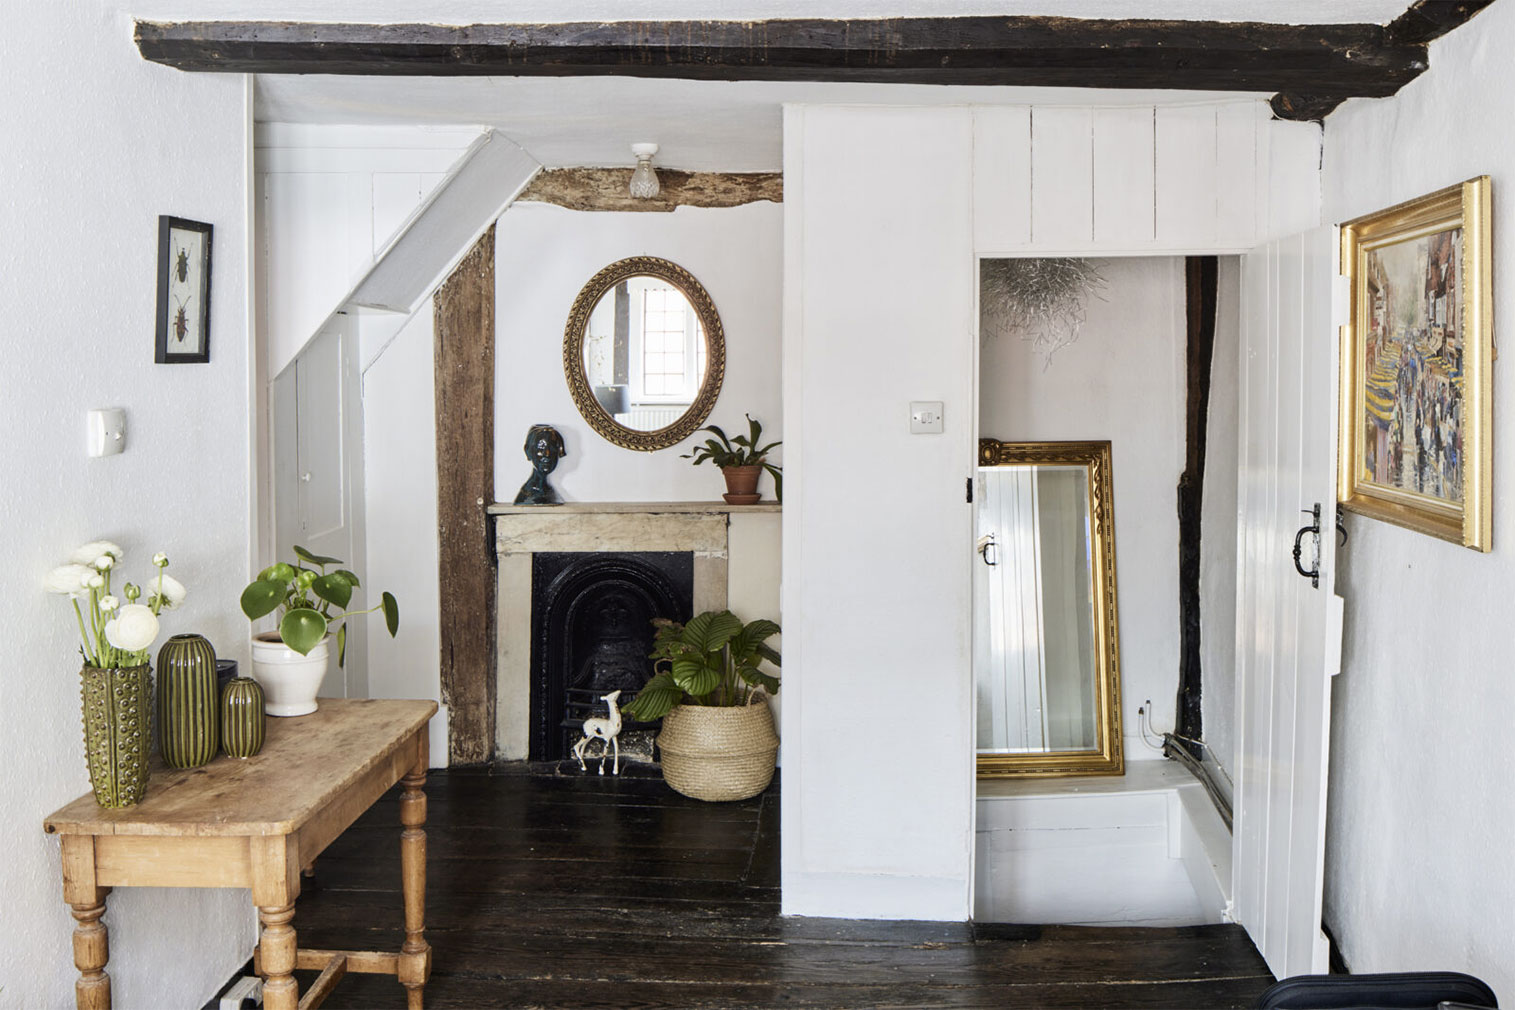 A landing with period fireplace and access from the original timber staircase